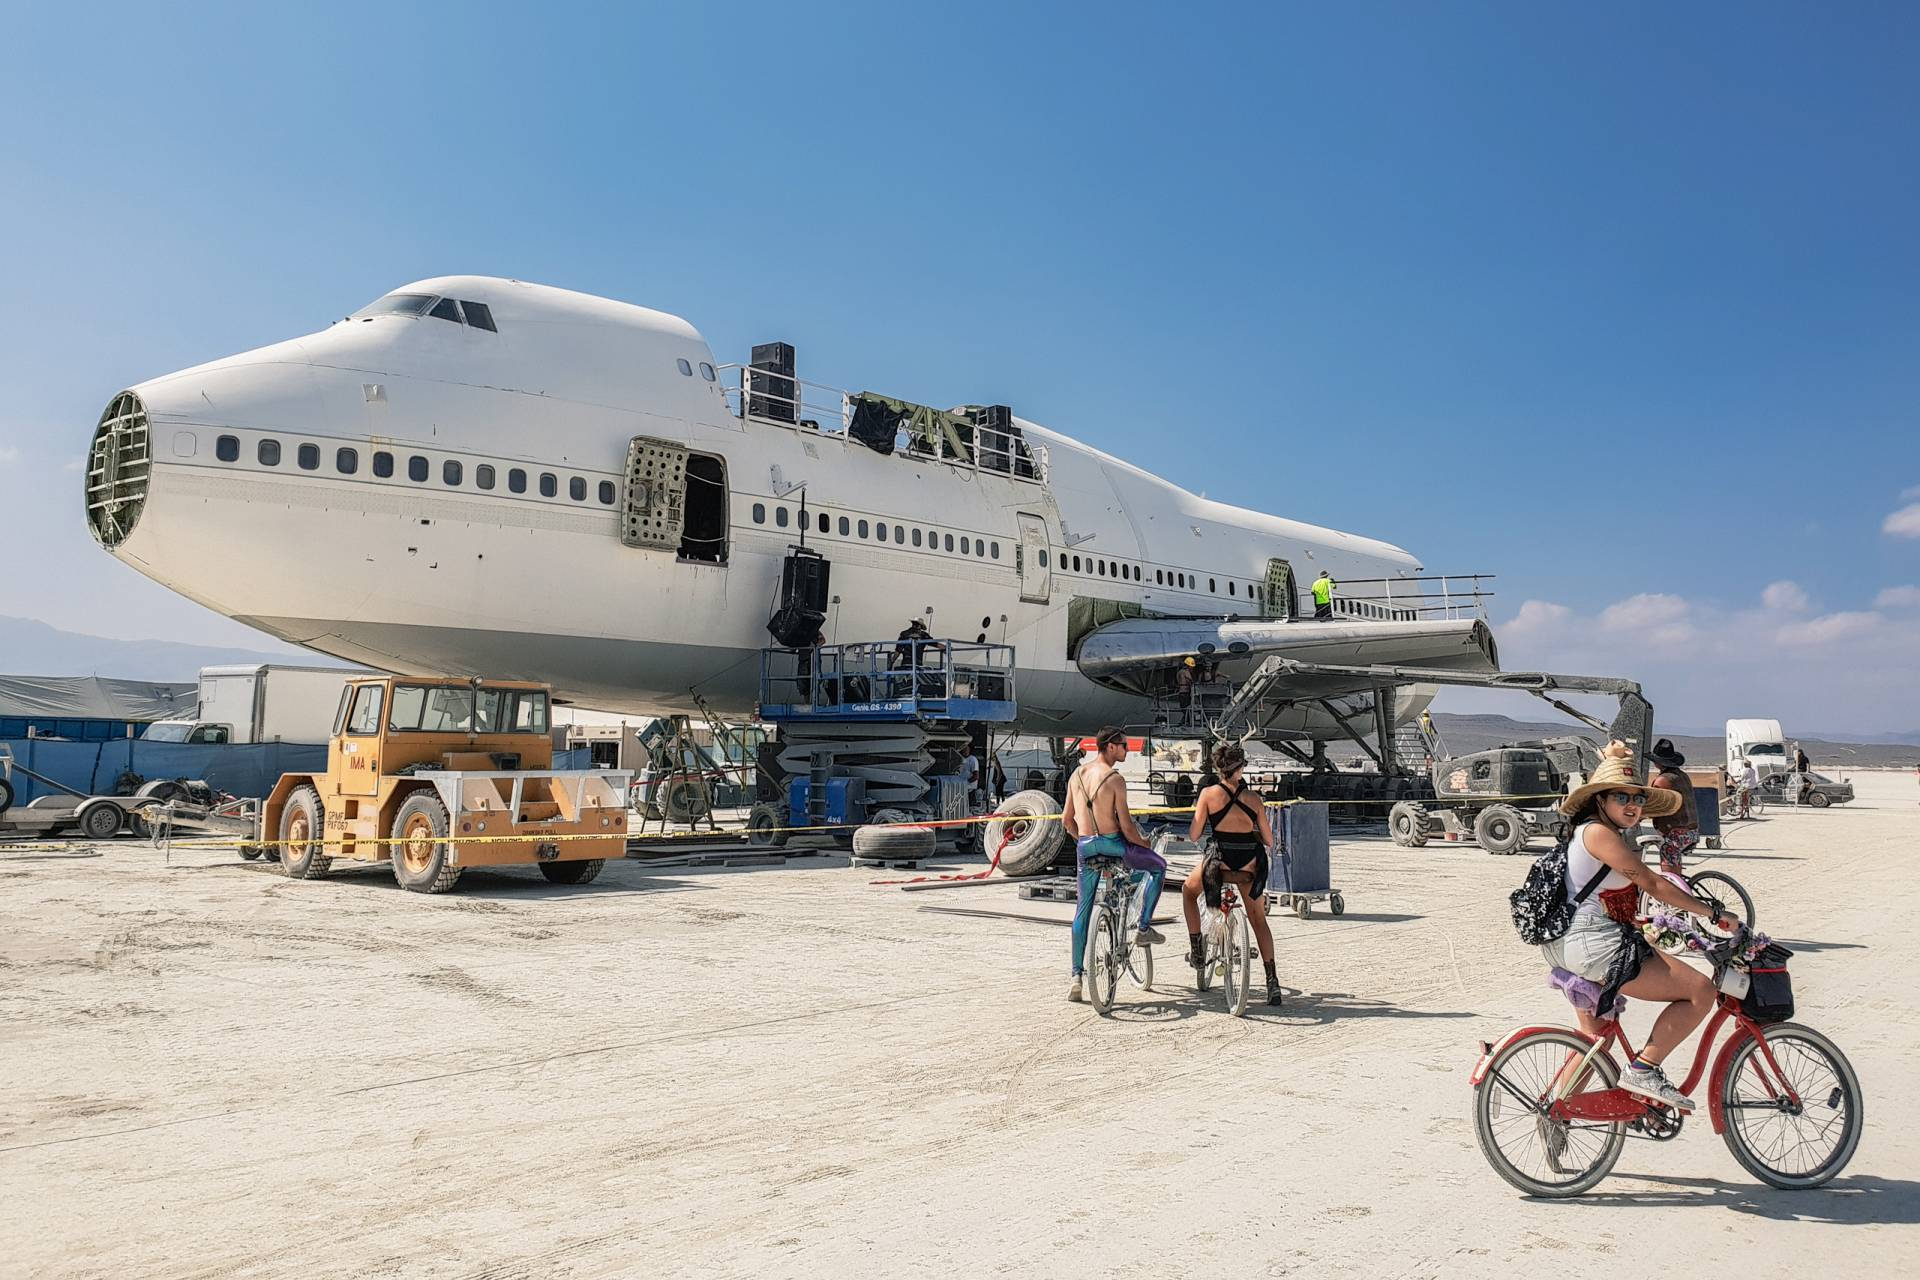 USA Burning Man 2018 Boeing